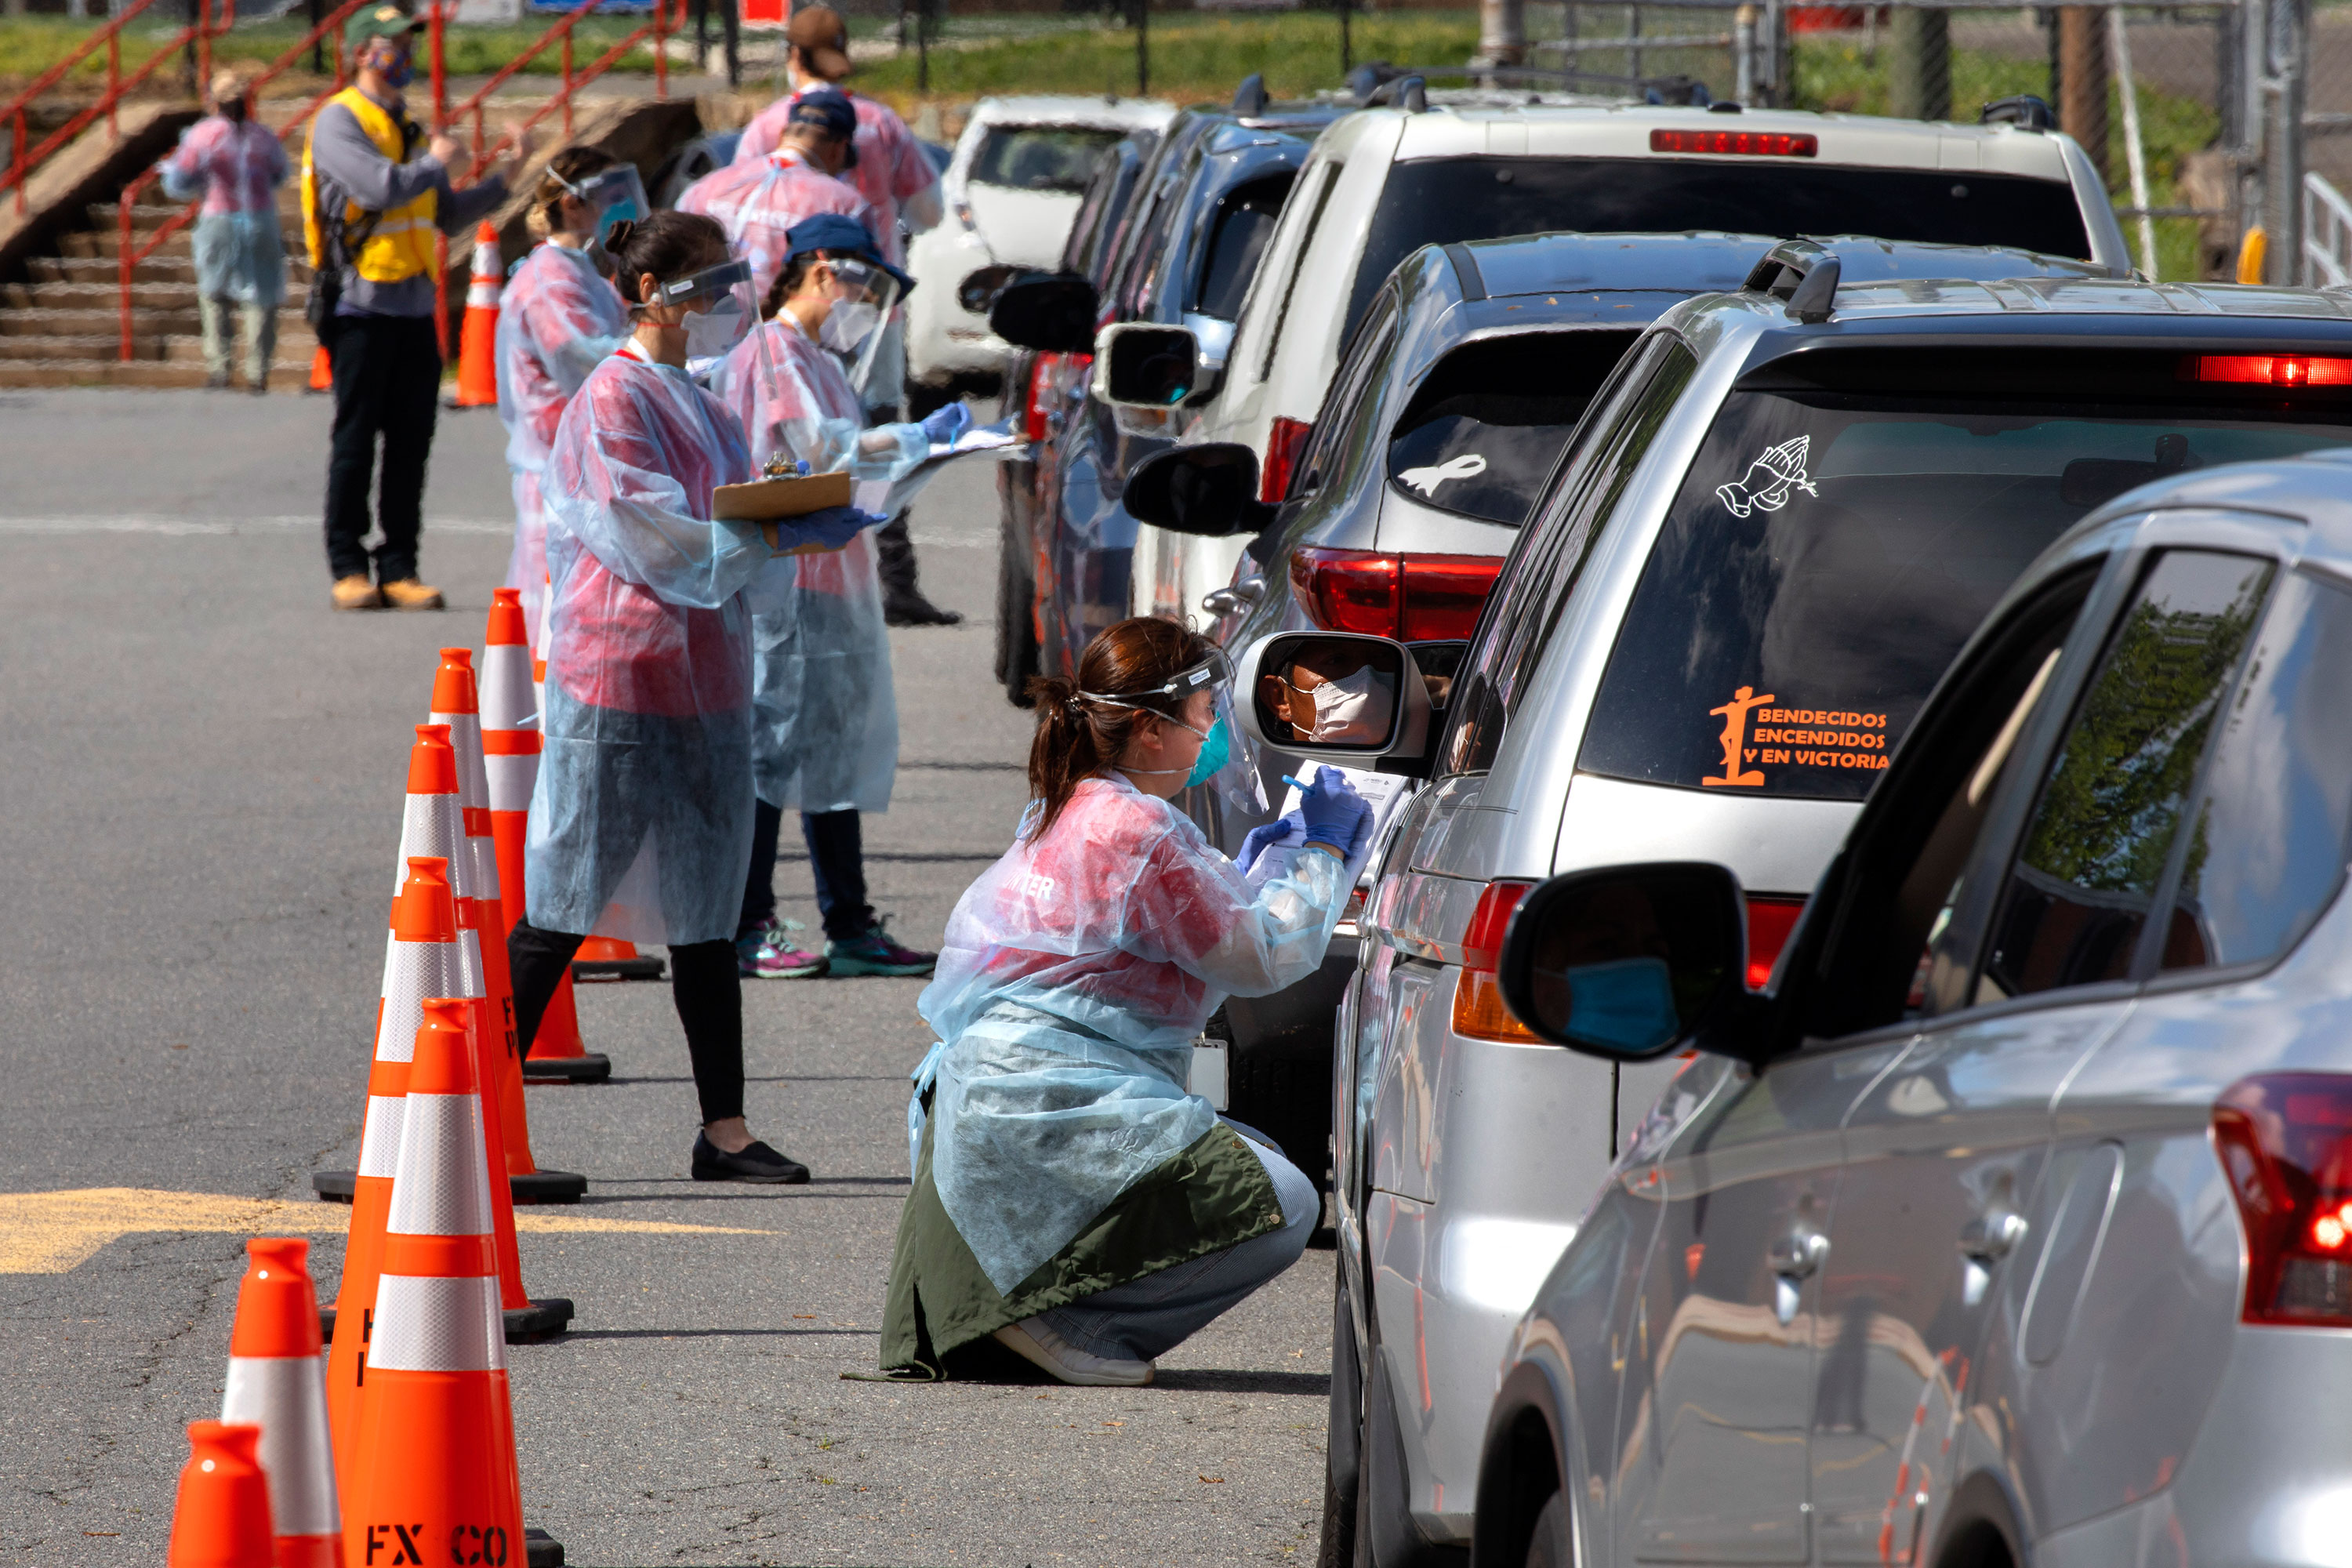 People wait in line to be tested for coronavirus on May 23 in Annandale, Virginia.